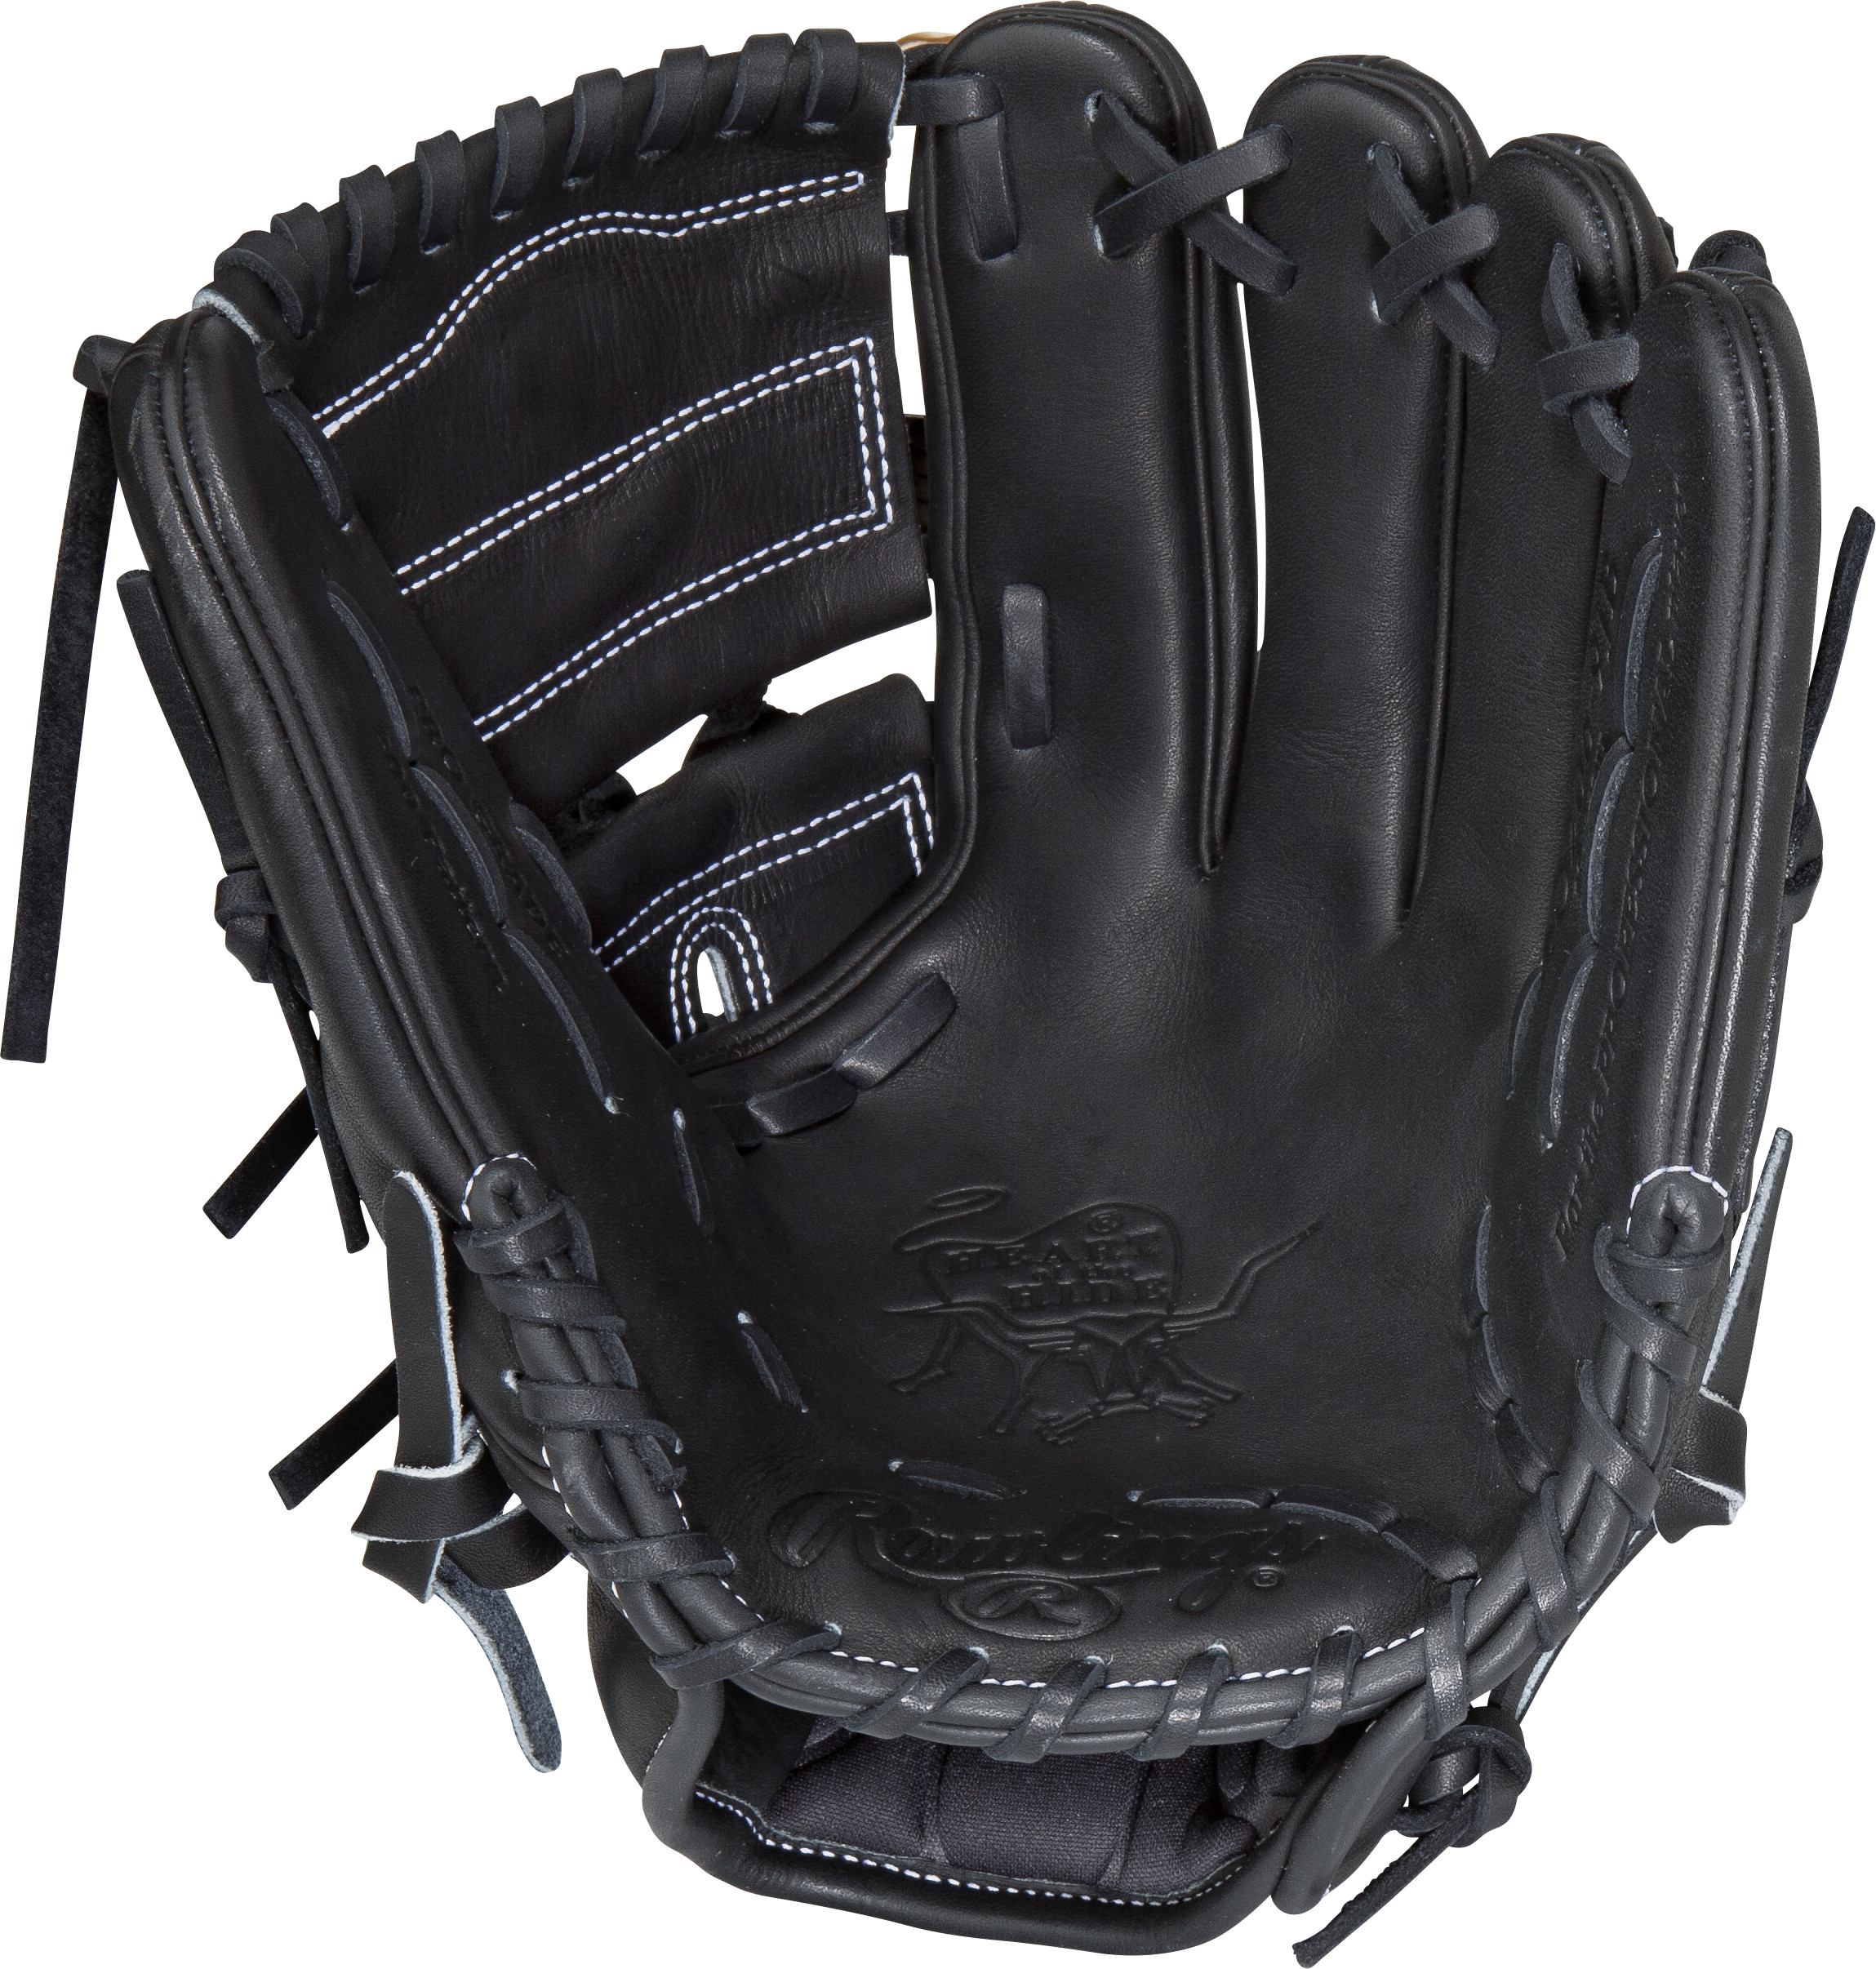 http://www.bestbatdeals.com/images/gloves/rawlings/PRO206-9JB_palm.jpg